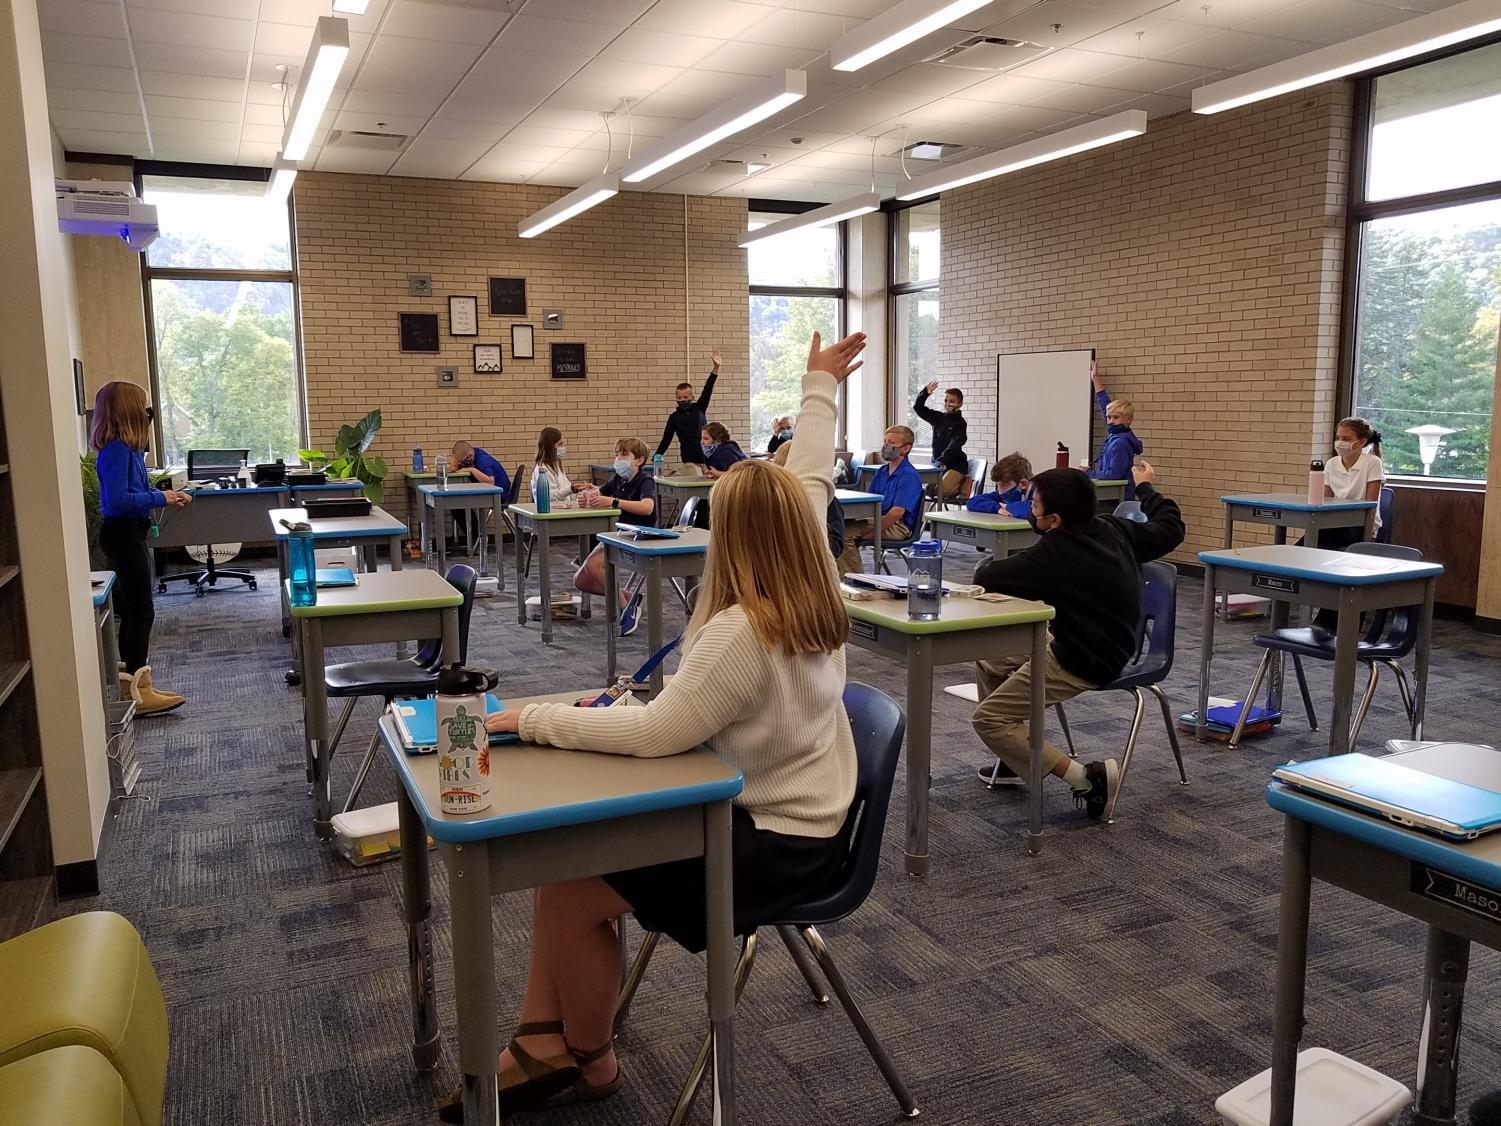 Students participate during class in the newly remolded classrooms in the John Nett Rec. building